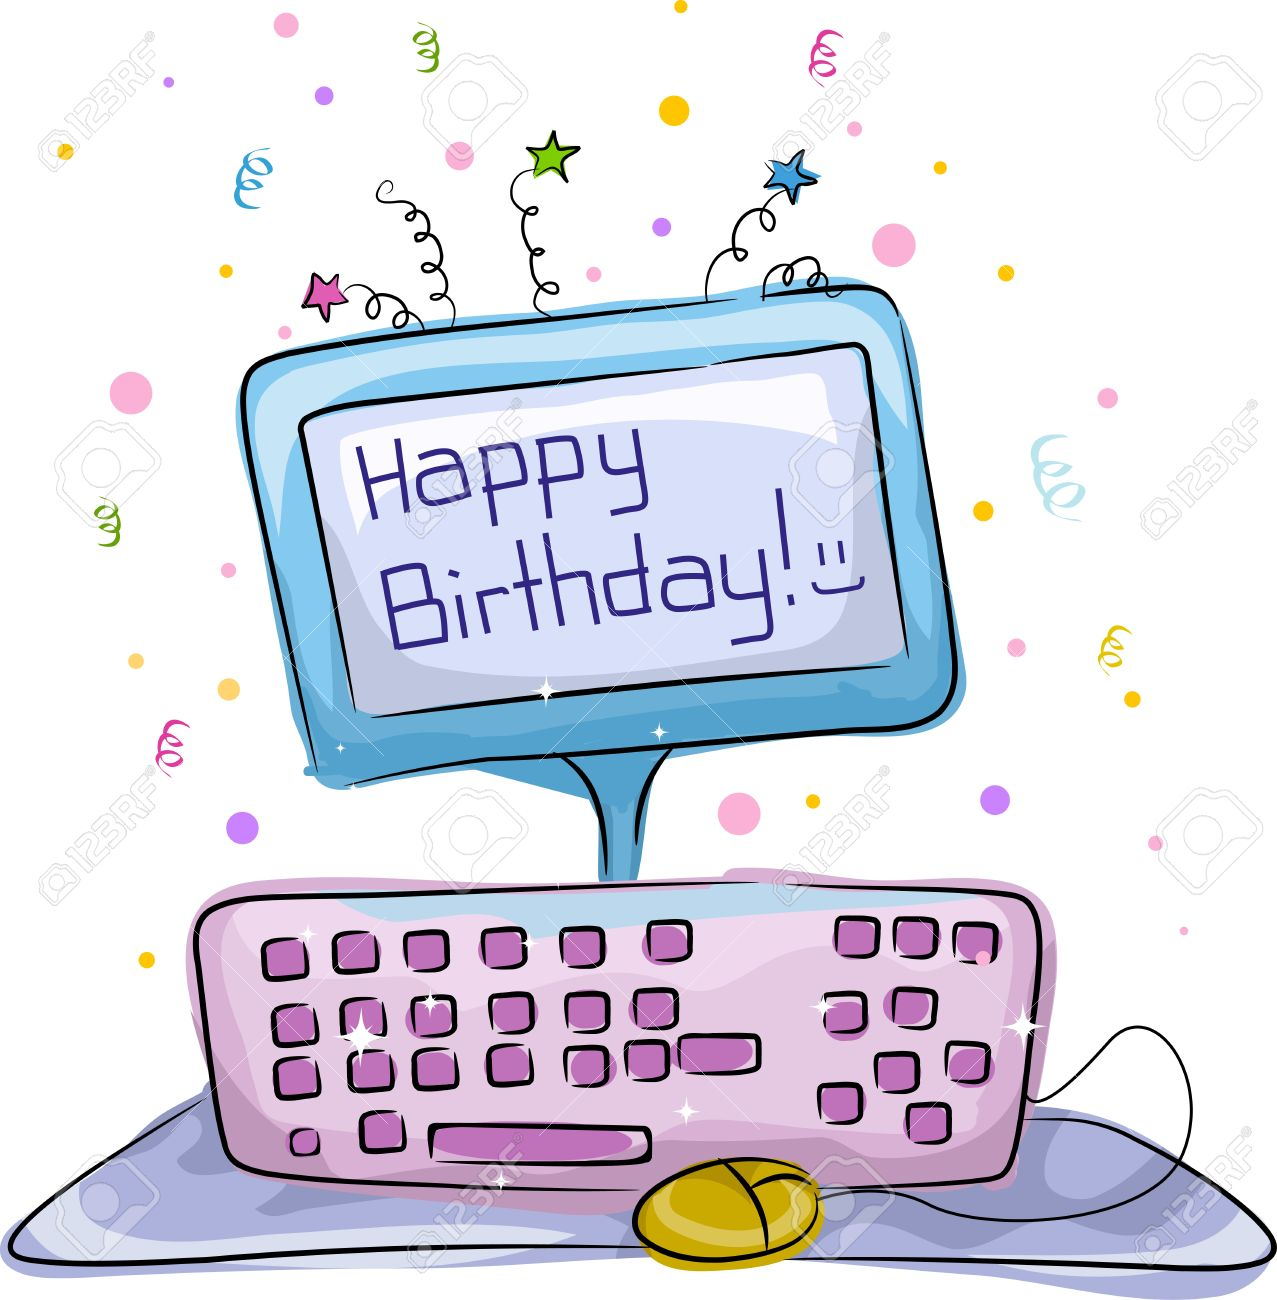 Tremendous Illustration Of A Birthday Cake With A Computer Theme Stock Photo Funny Birthday Cards Online Amentibdeldamsfinfo